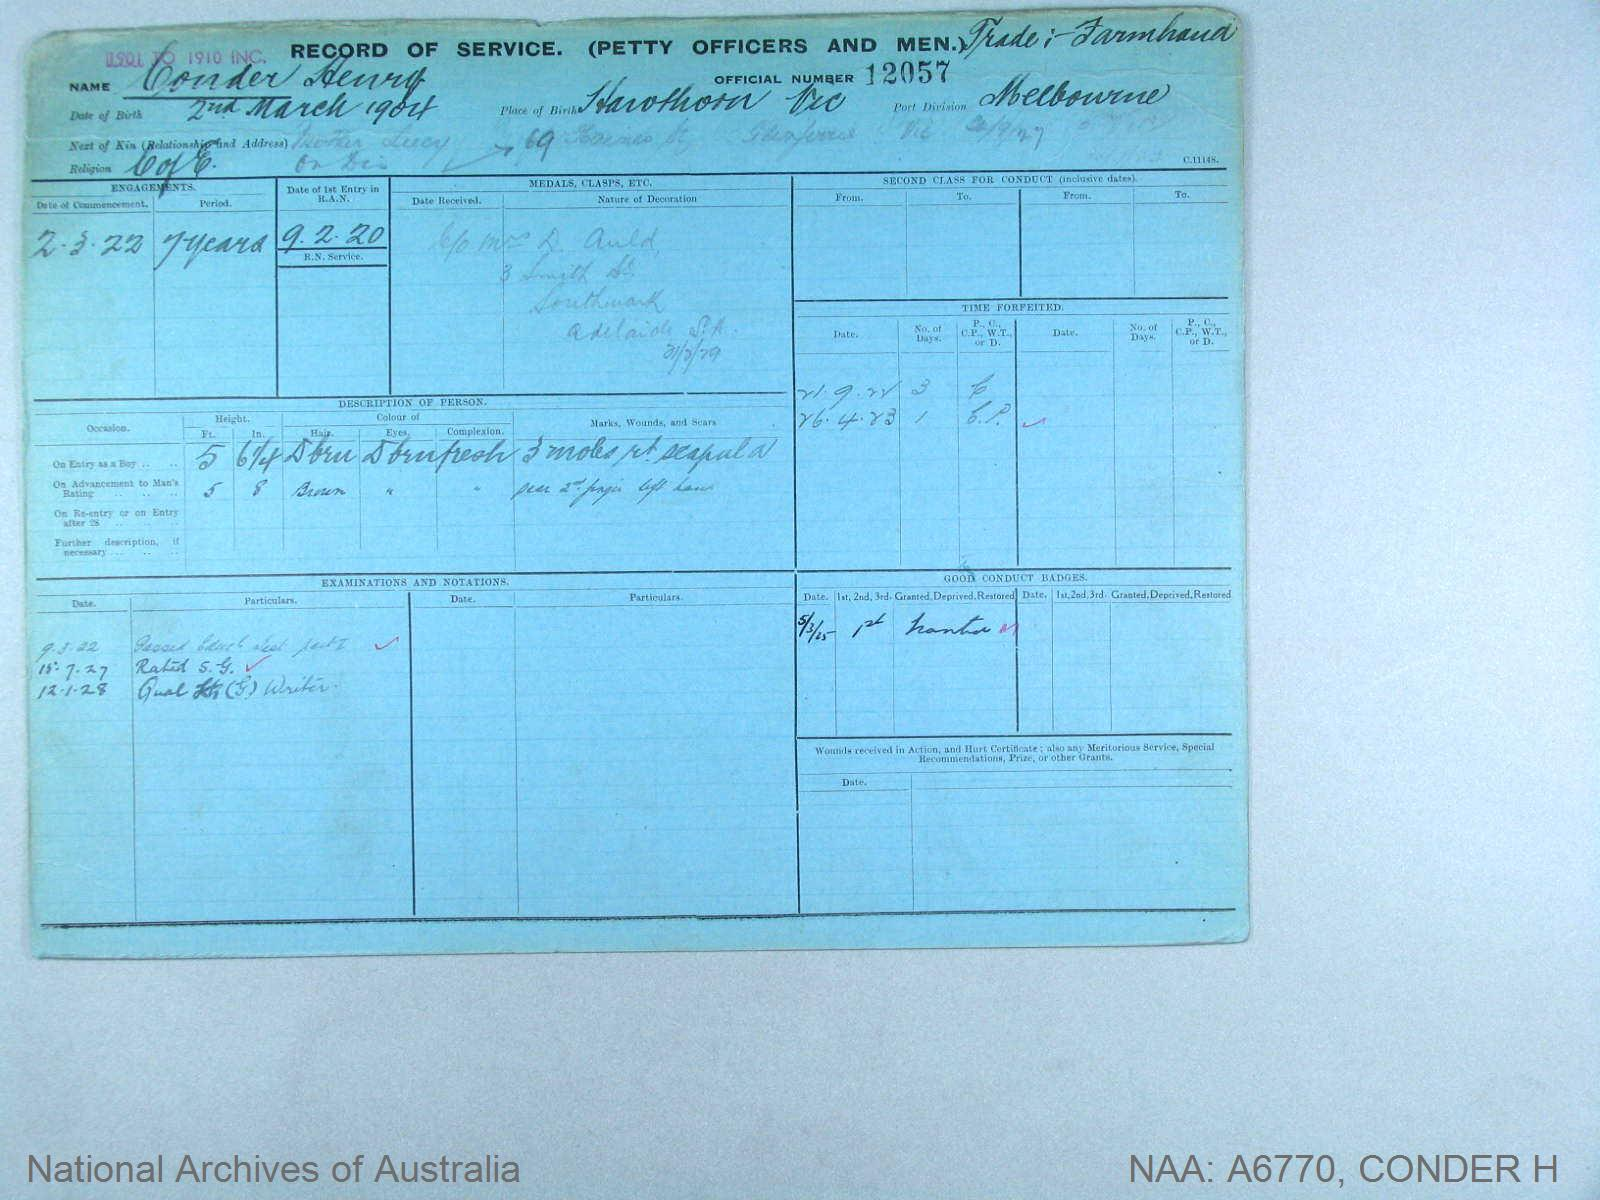 CONDER HENRY : Service Number - 12057 : Date of birth - 02 Mar 1904 : Place of birth - HAWTHORN VIC : Place of enlistment - MELBOURNE : Next of Kin - CONDER LUCY